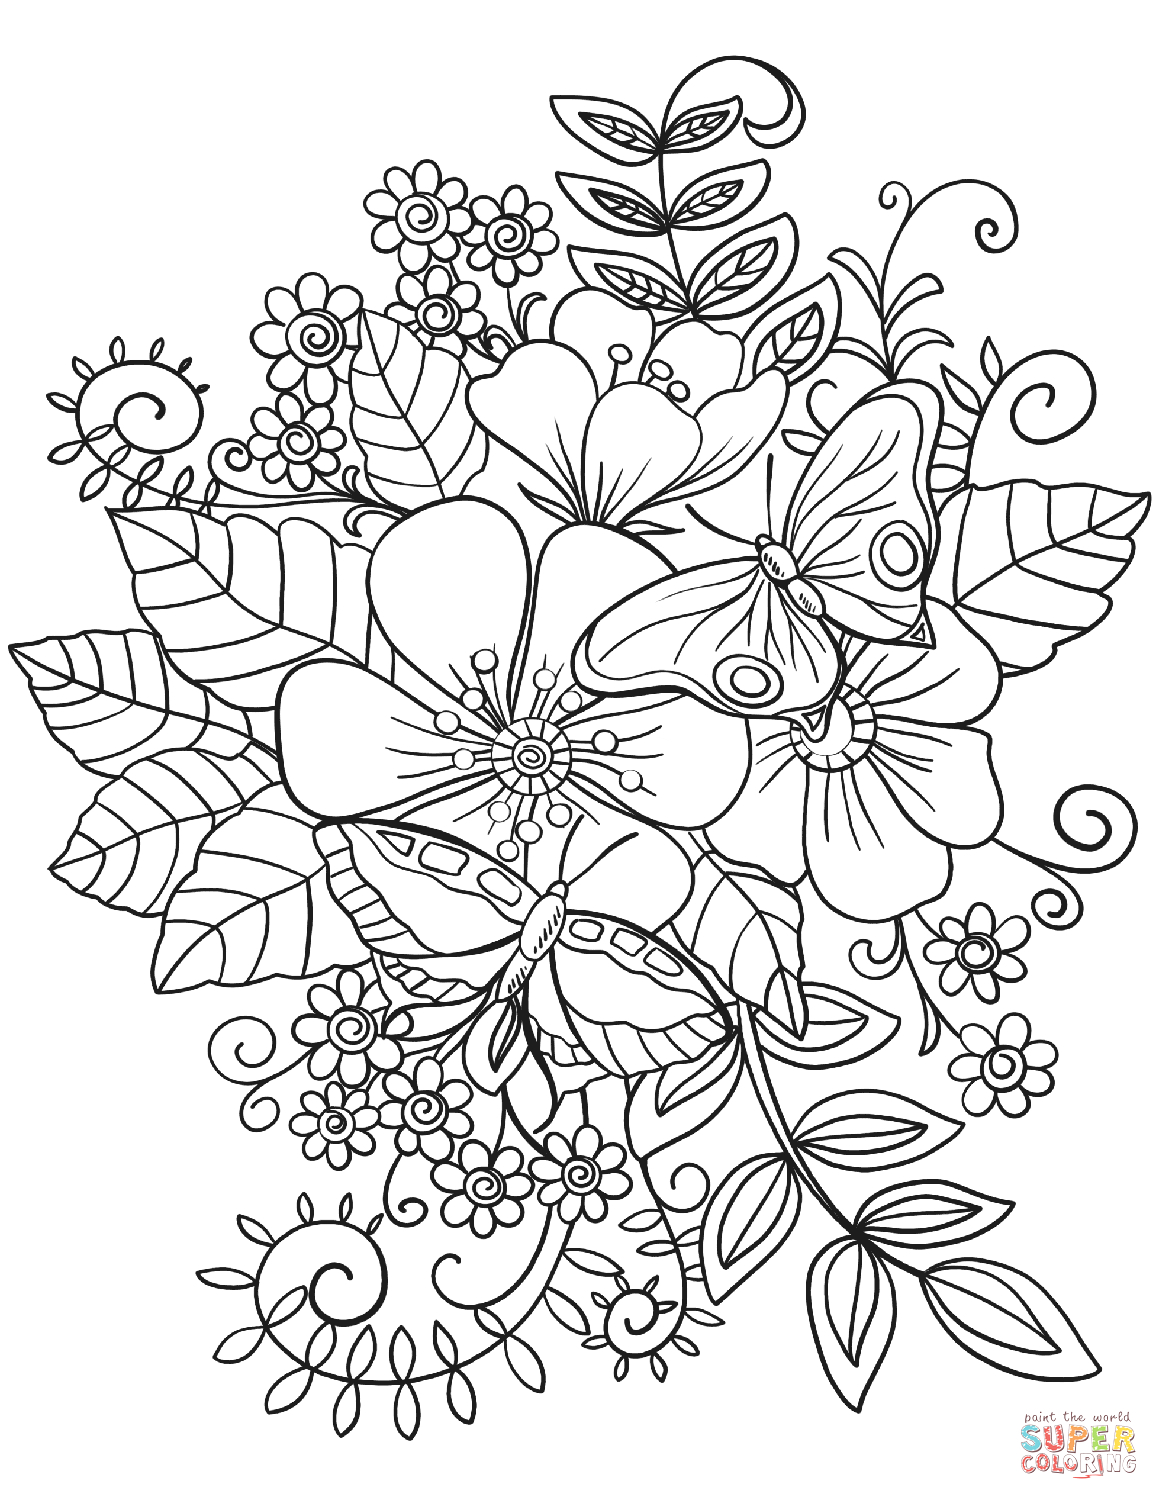 Free Printable Coloring Pages Flowers and butterflies butterflies On Flowers Coloring Page